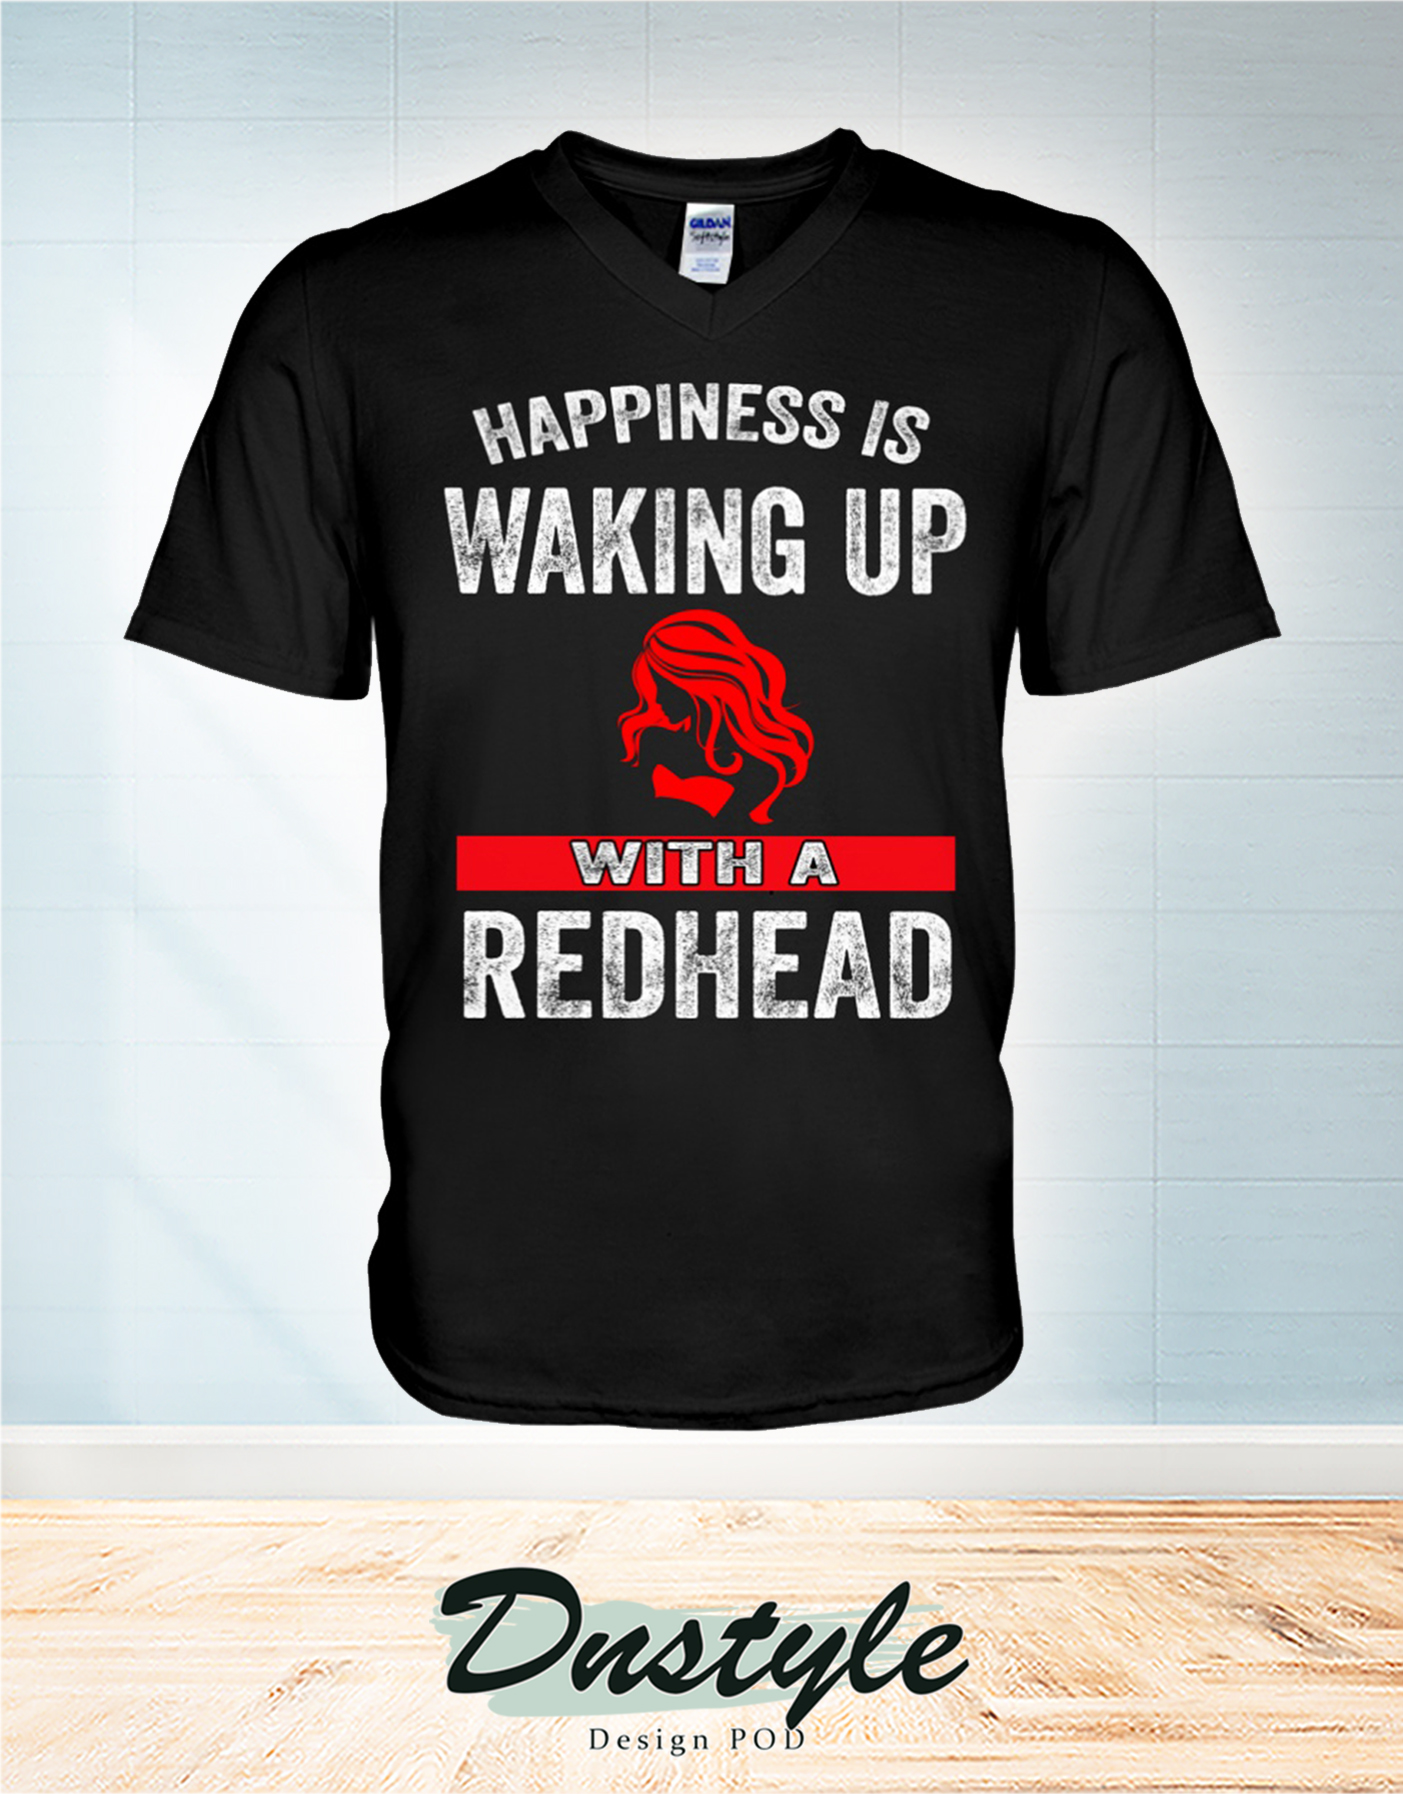 Happiness is waking up with a redhead v-neck